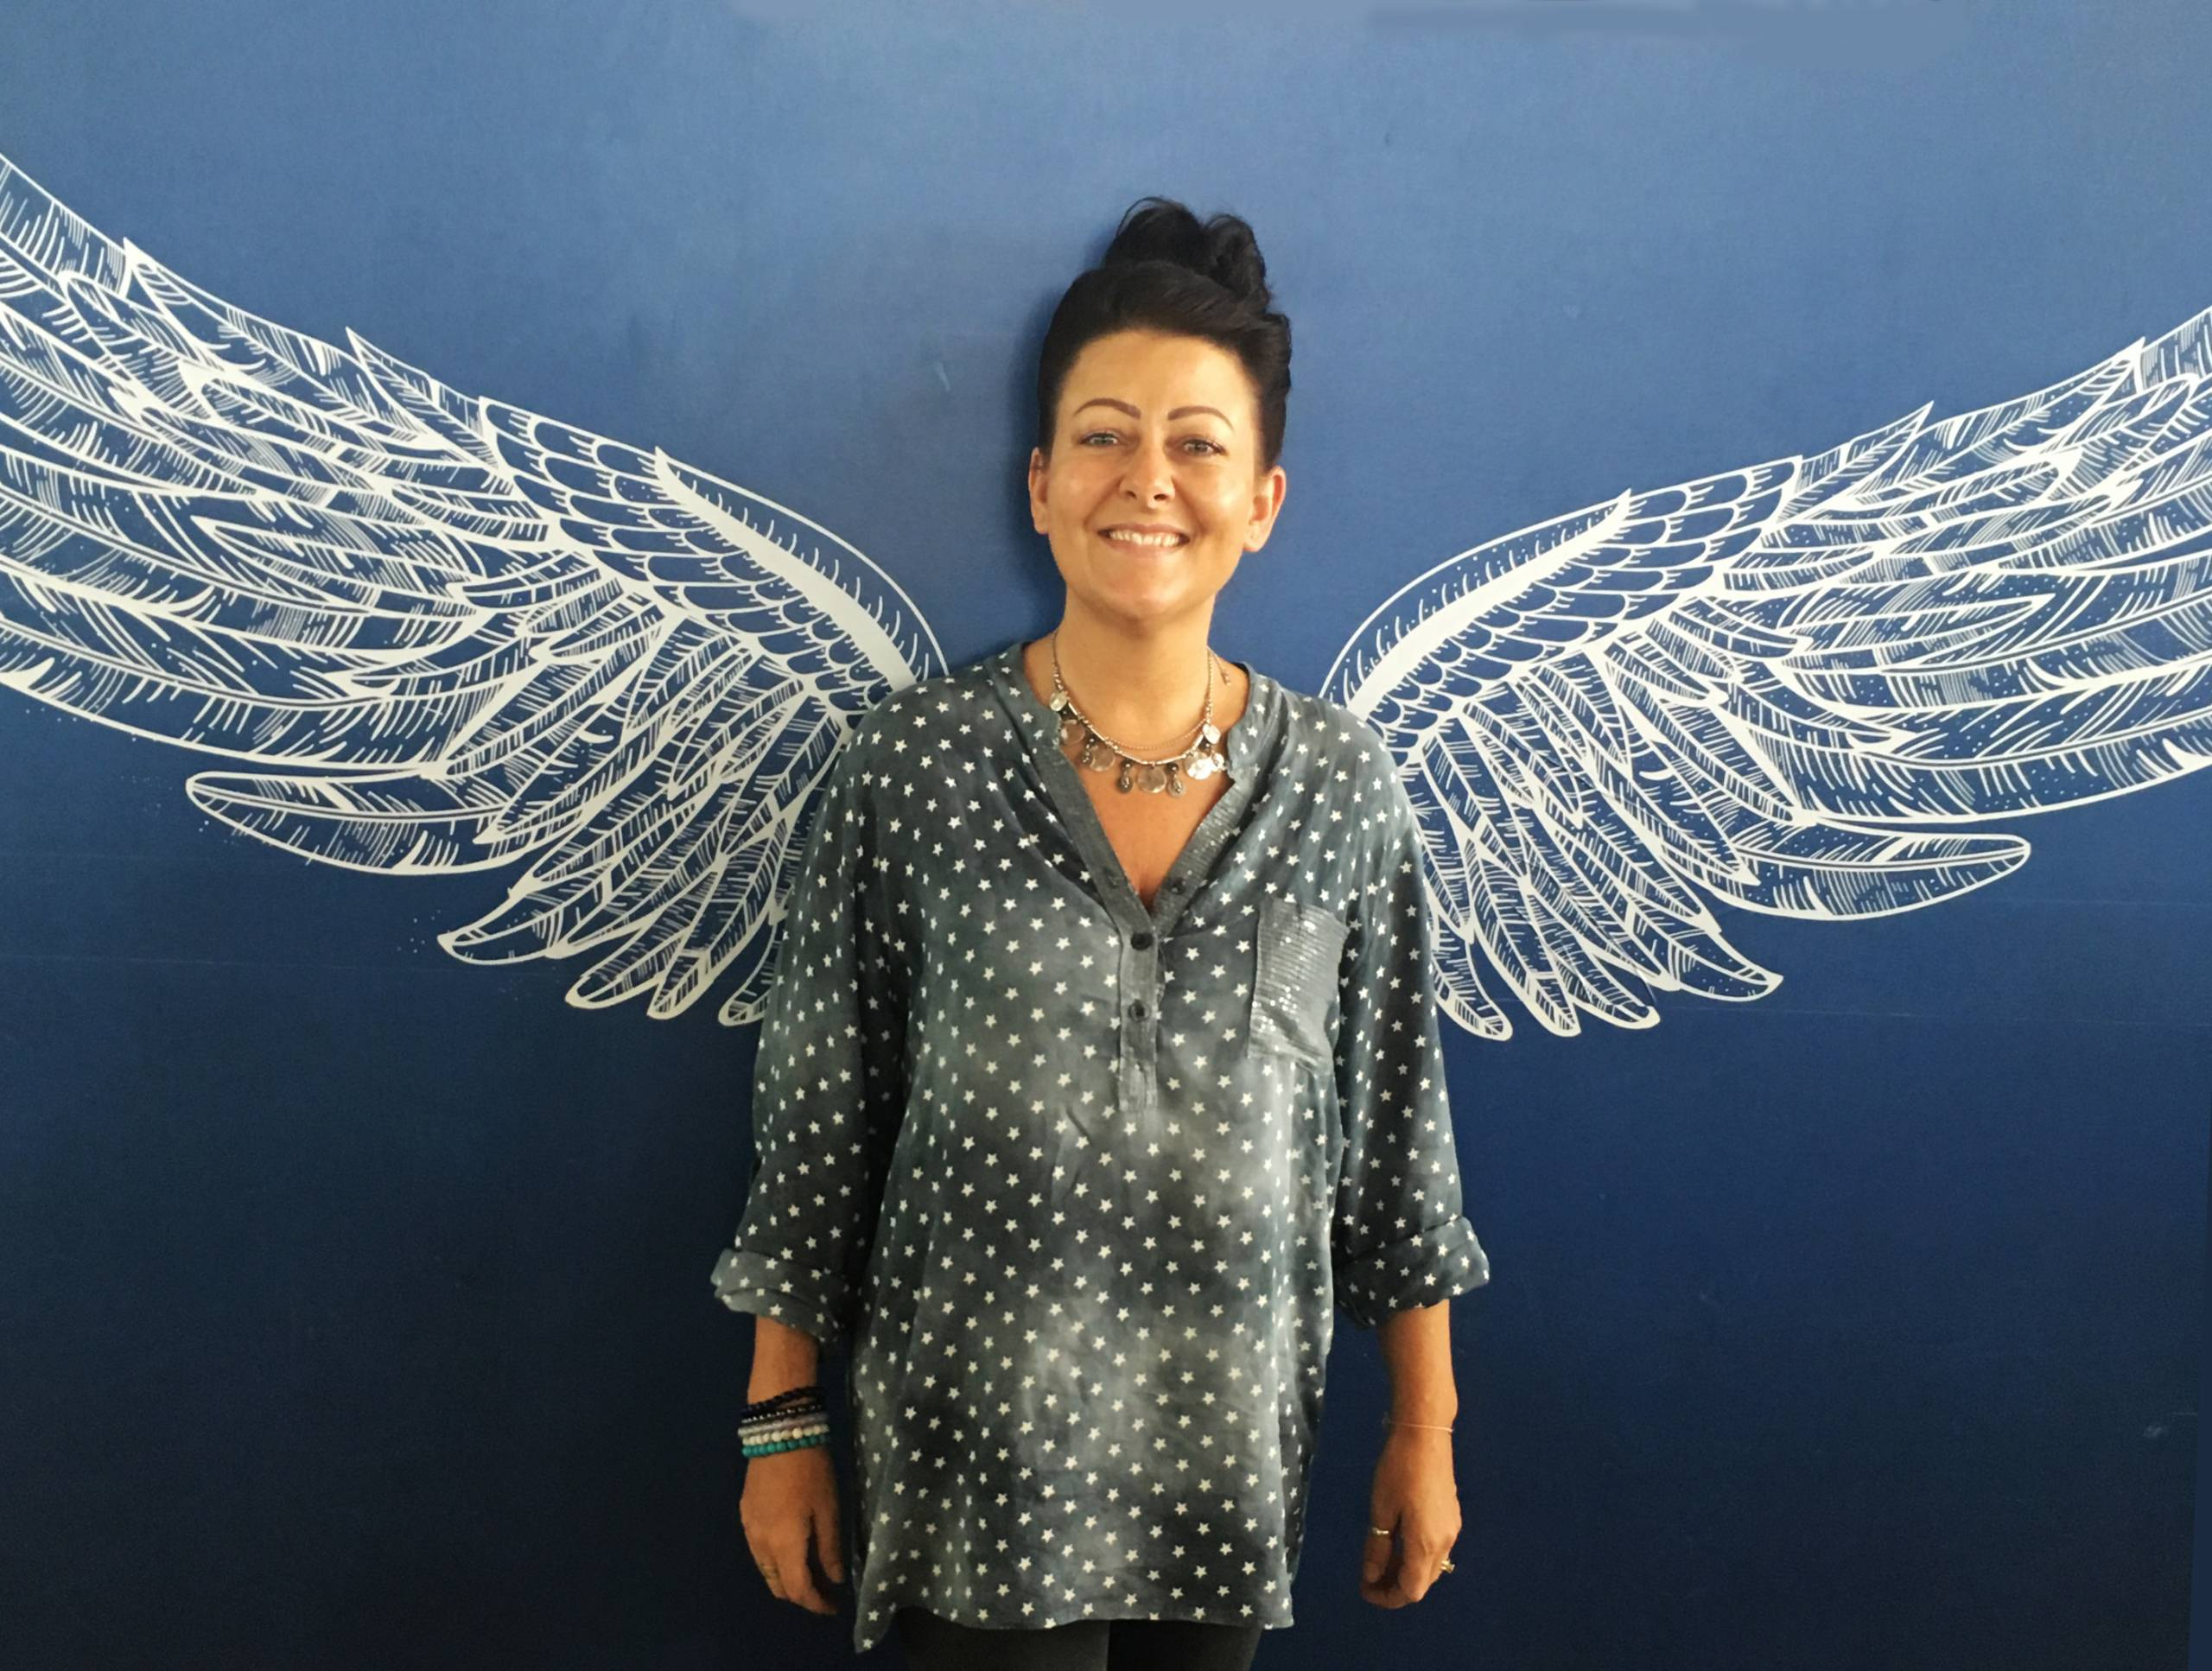 Nichola Hemming - Founder of The Soul Angels